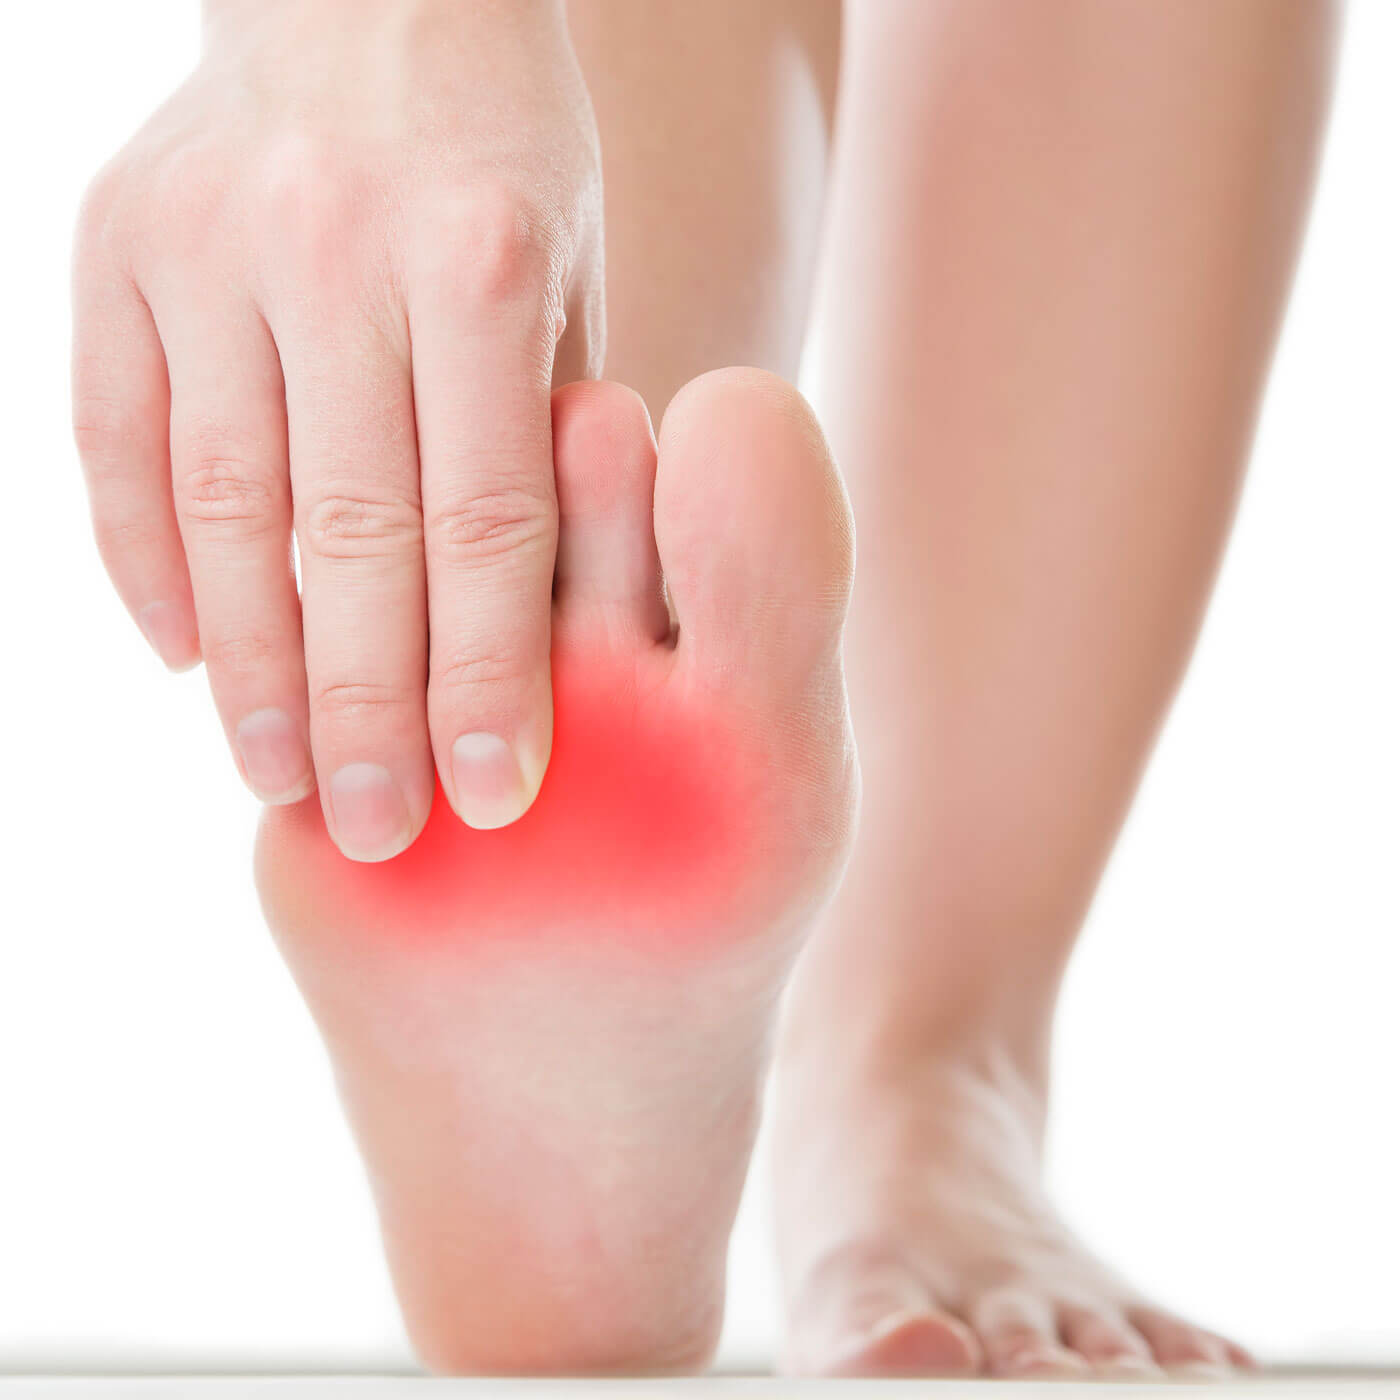 Essential Chiropractic and Healthcare Clinic - Chiropractor Podiatry Services Sore Feet Dry Needling